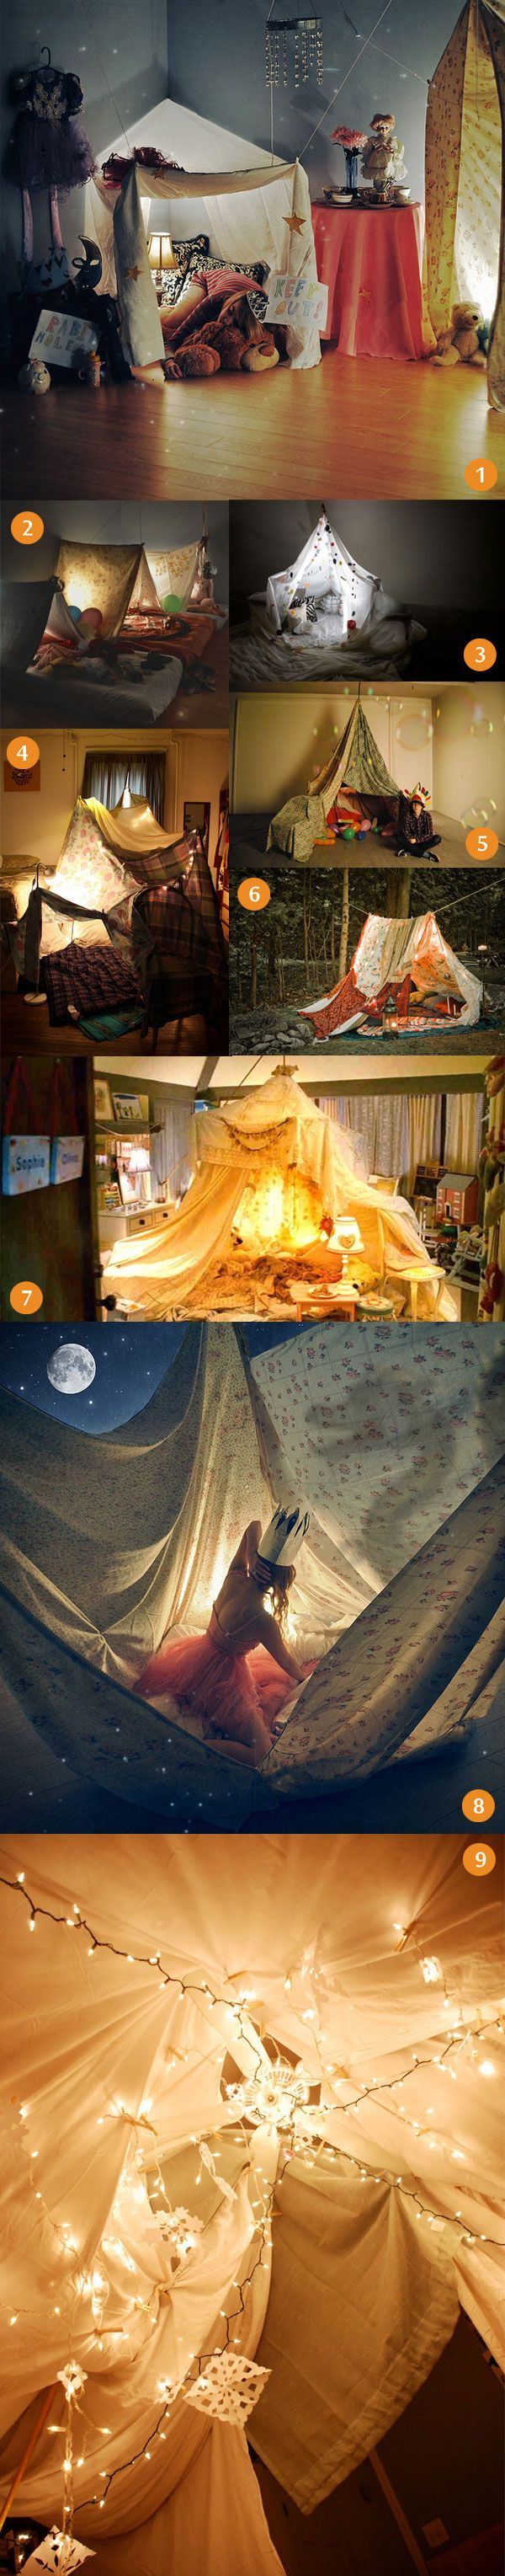 Blanket Forts I LOVE Lets Make One Right Now Never Too